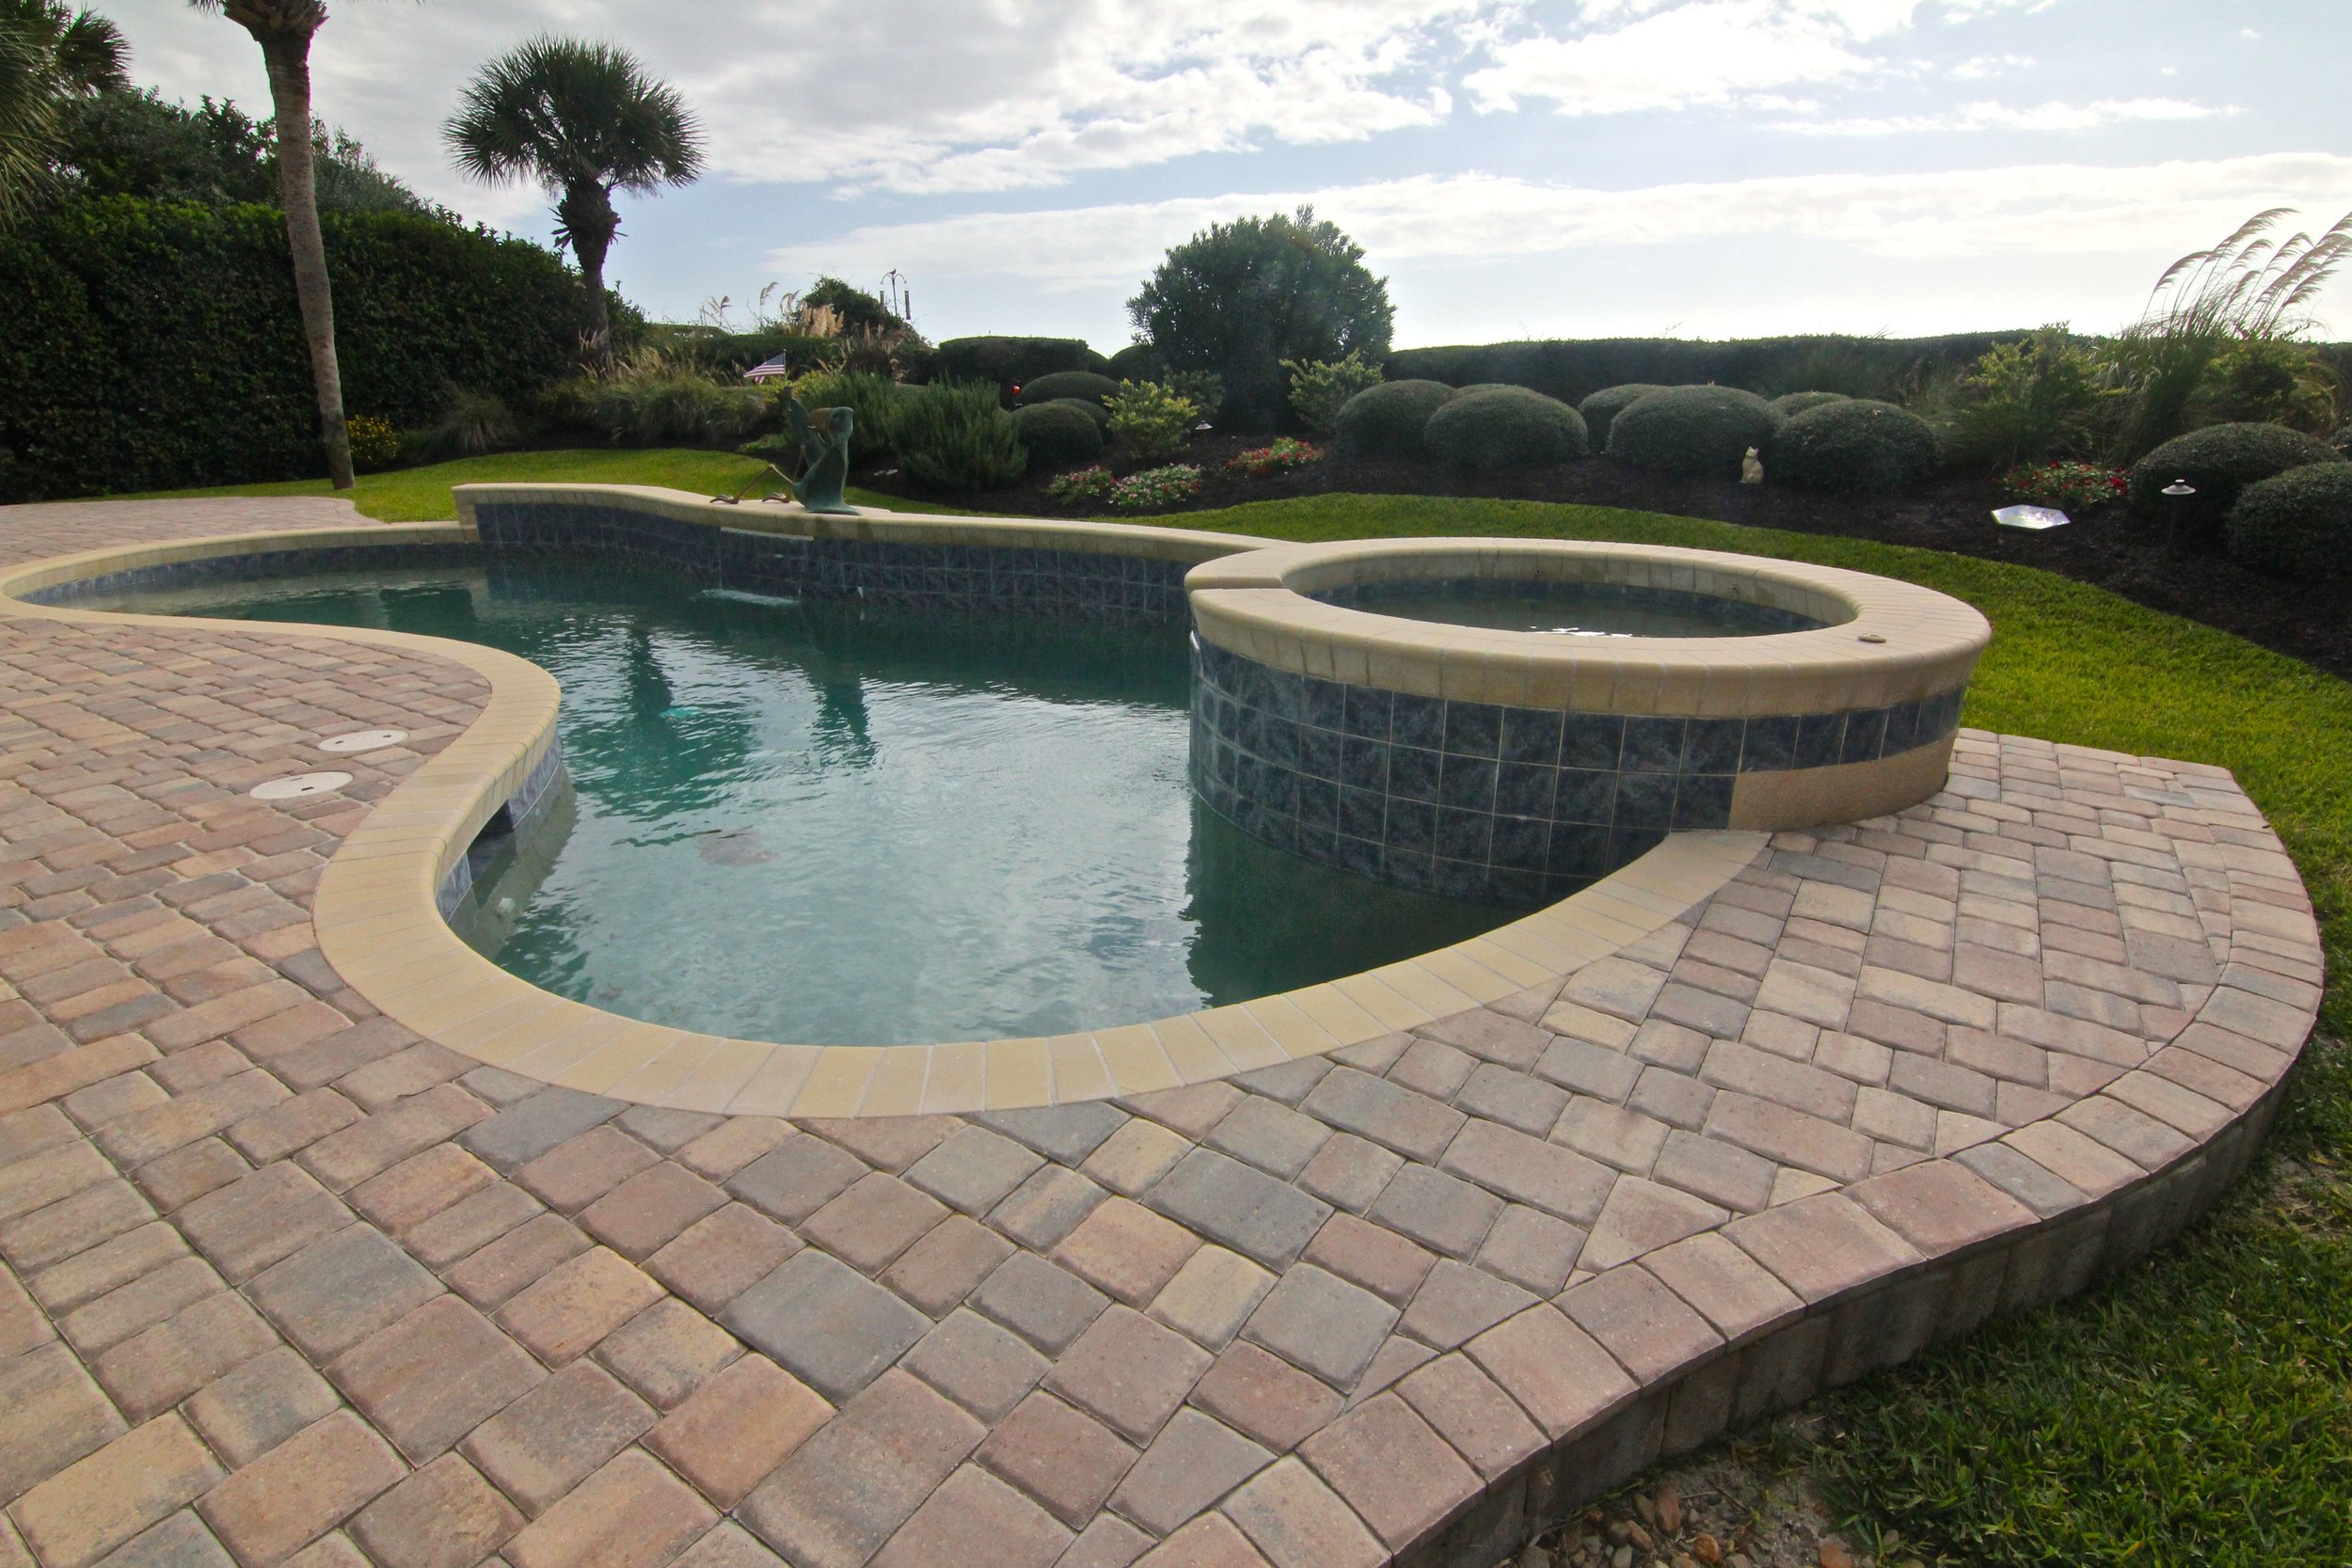 Pool Deck Remodel Using Traditional Remodel Coping